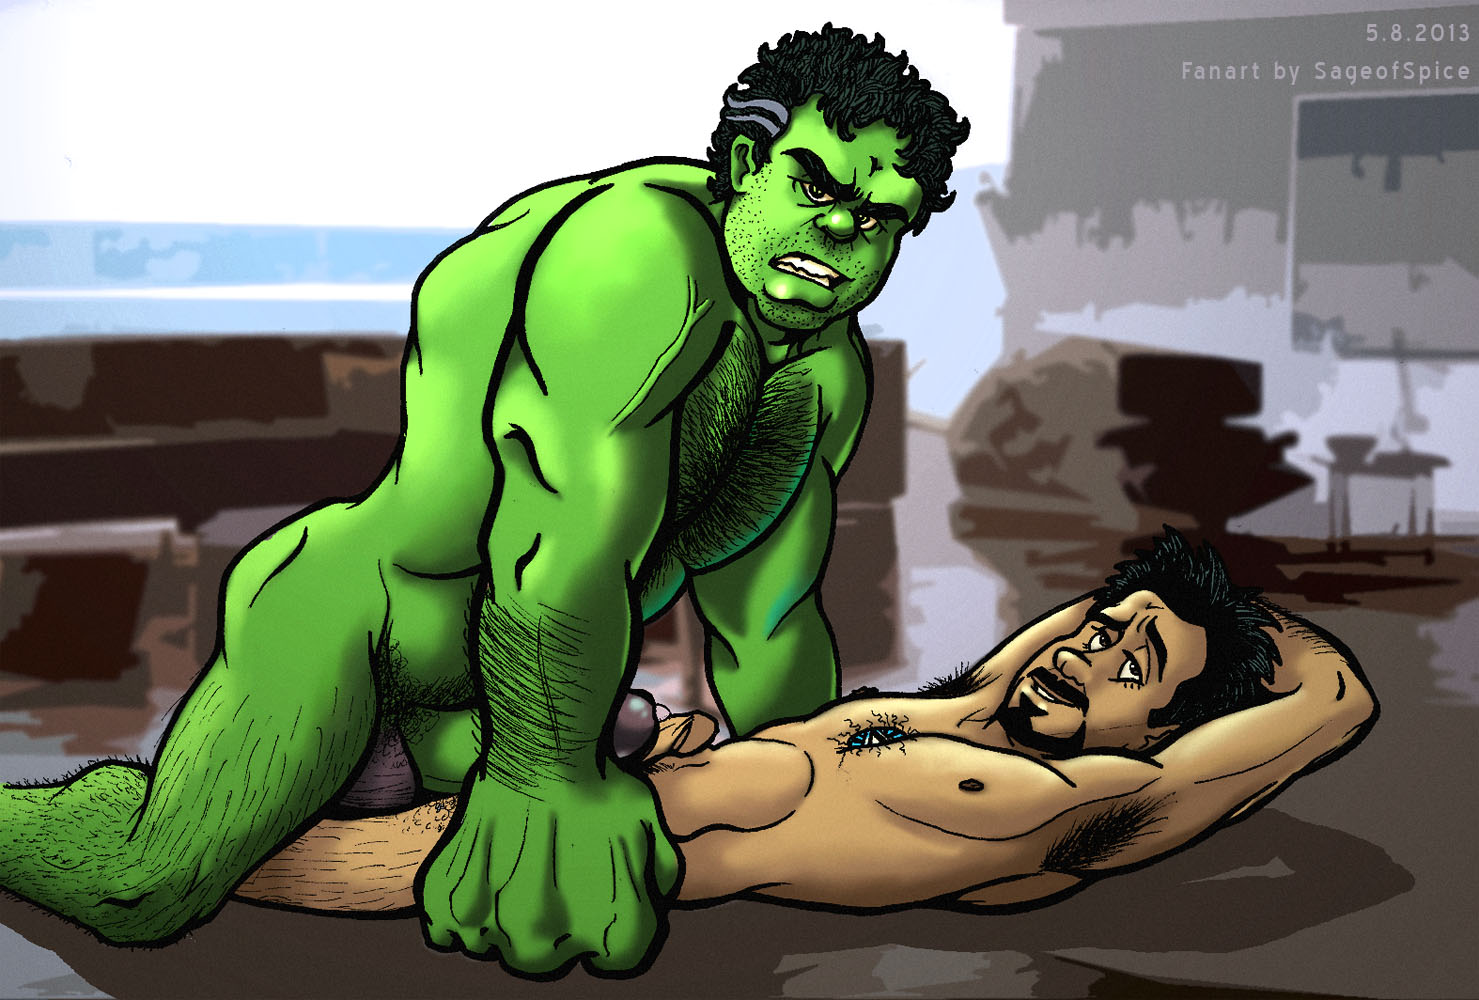 The hulk violently fucks his cock by sliding her entire body up and down his rock